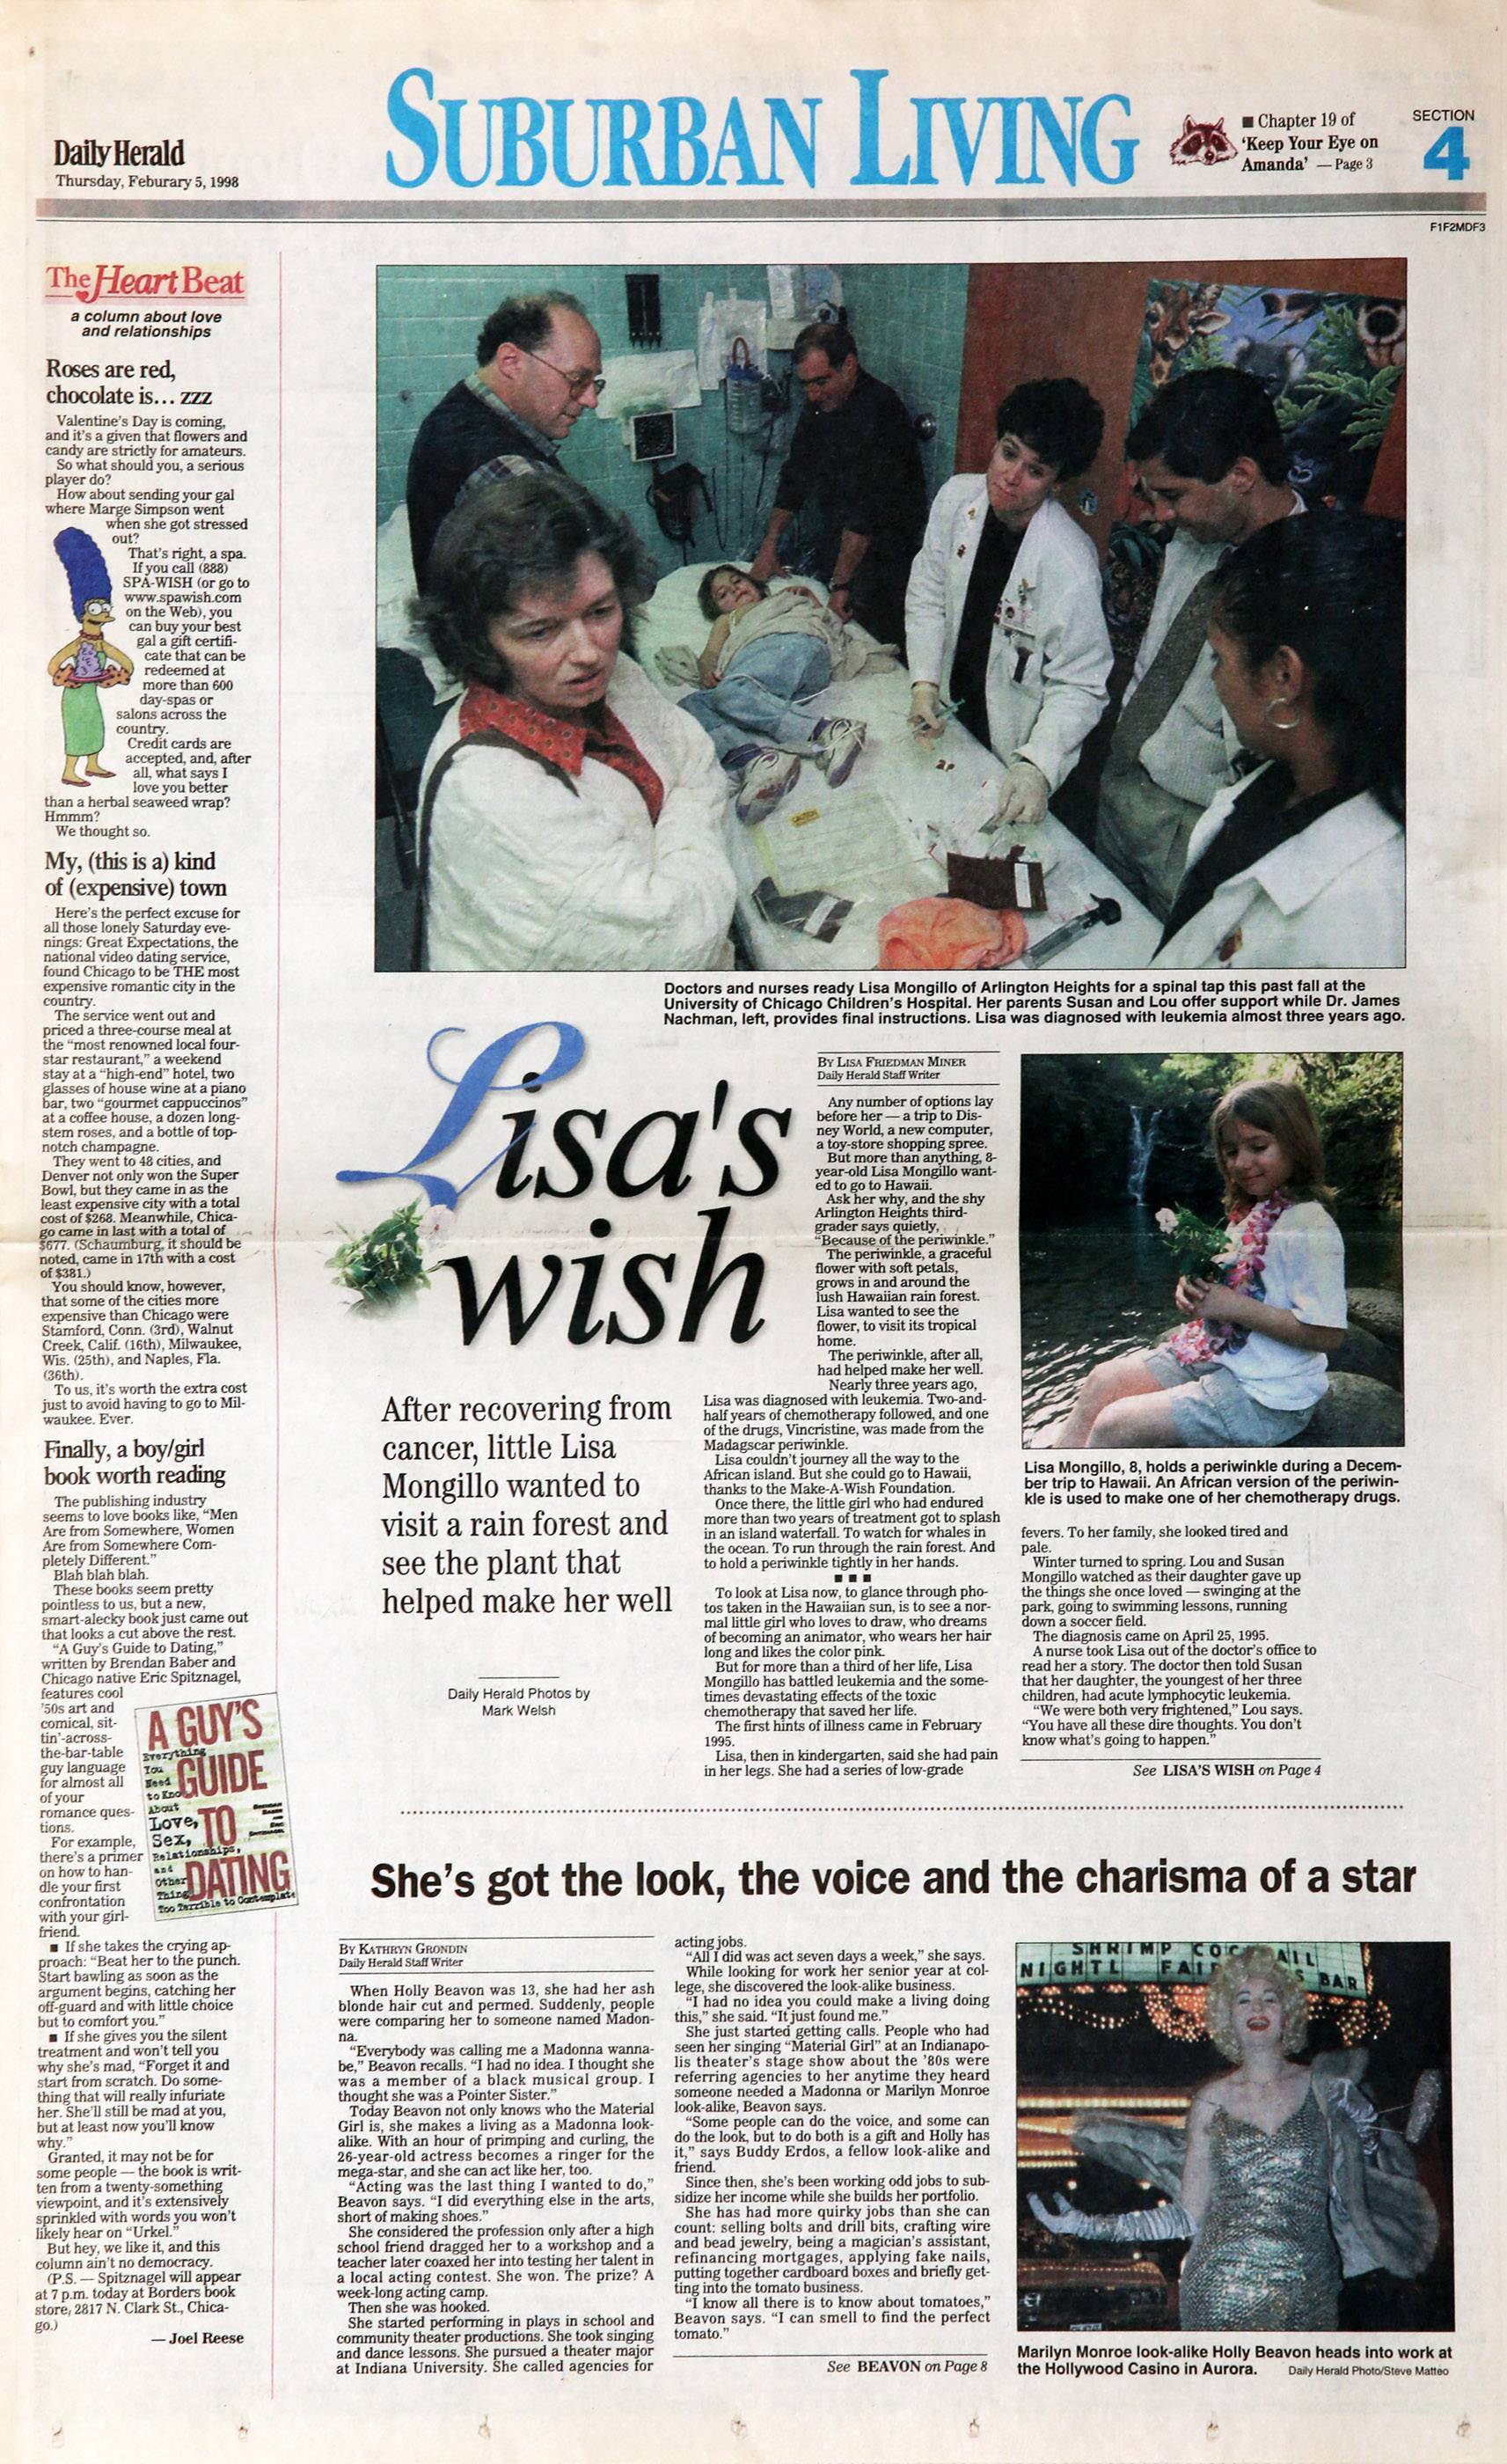 The subject of this Daily Herald story in 1998 about her leukemia treatments and Make-A-Wish trip to Hawaii, Lisa Mongillo is now a smart, healthy and funny 25-year-old writer and improv performer.